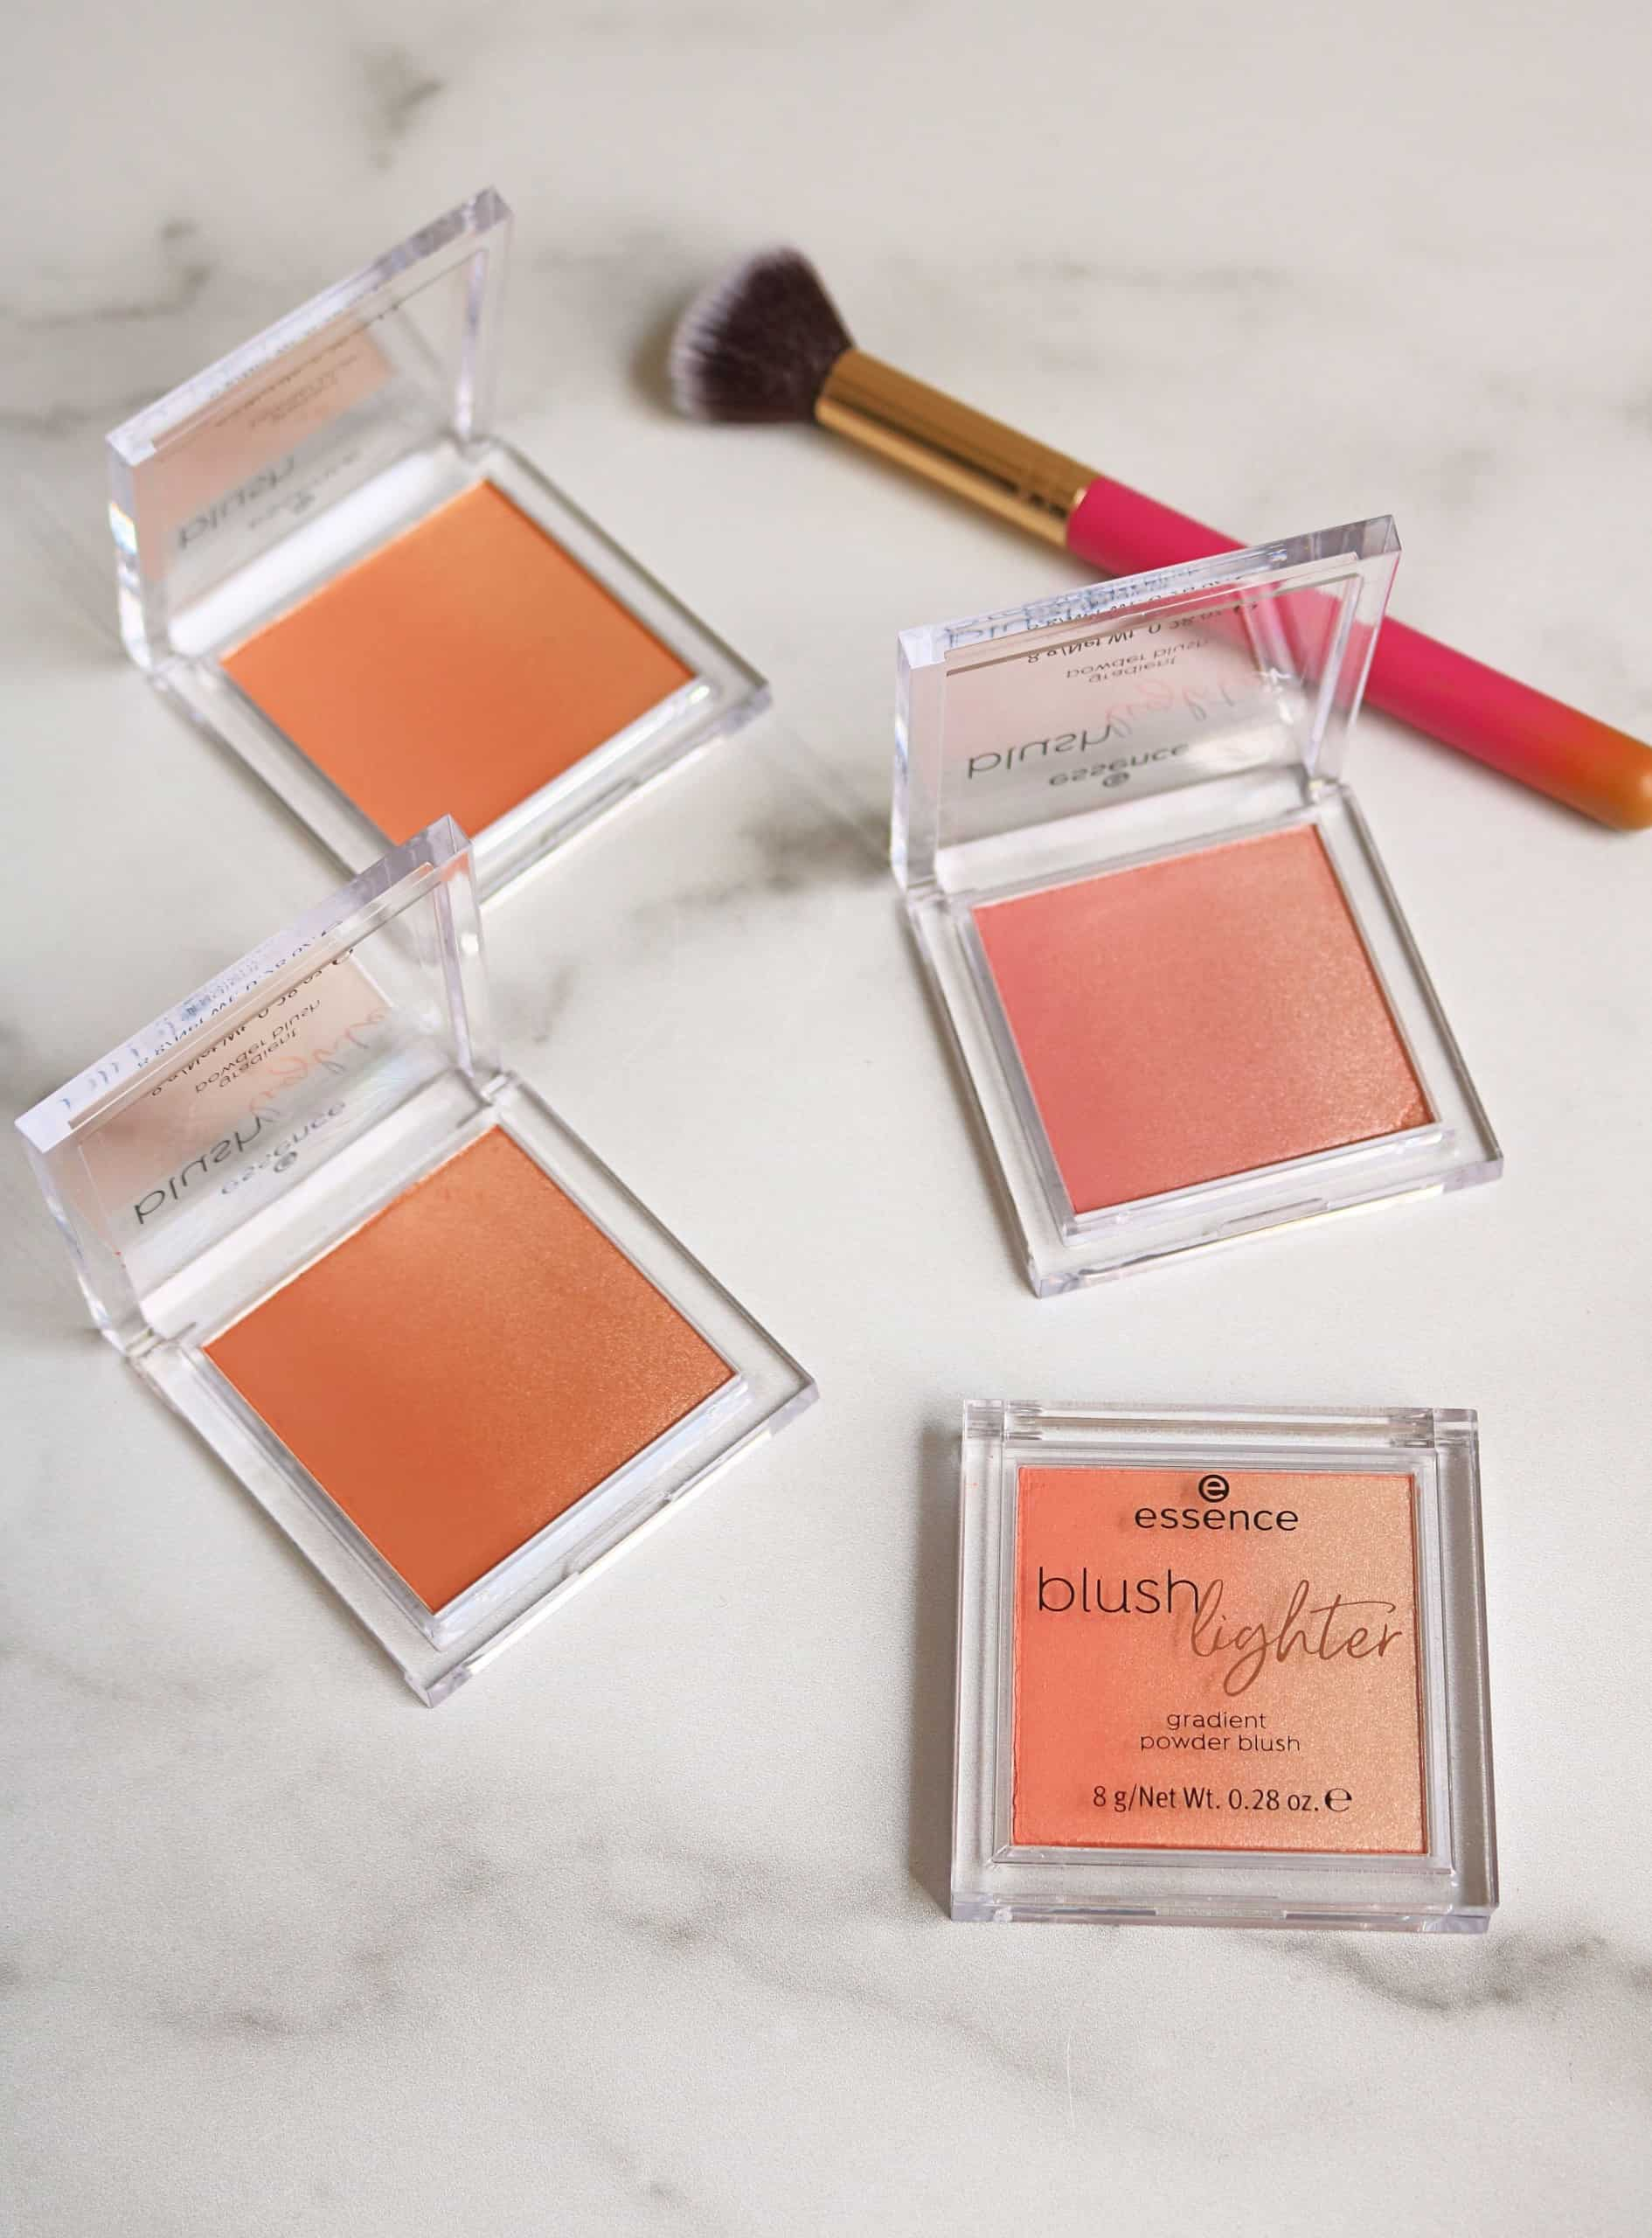 Essence Blush Lighters are a beautiful and affordable drugstore blush and highlighter in one and come in 4 gorgeous shades. Check out my full review and swatches of these pretty blushes that are under $5! #blush #highlighter #drugstoremakeup #essencemakeup